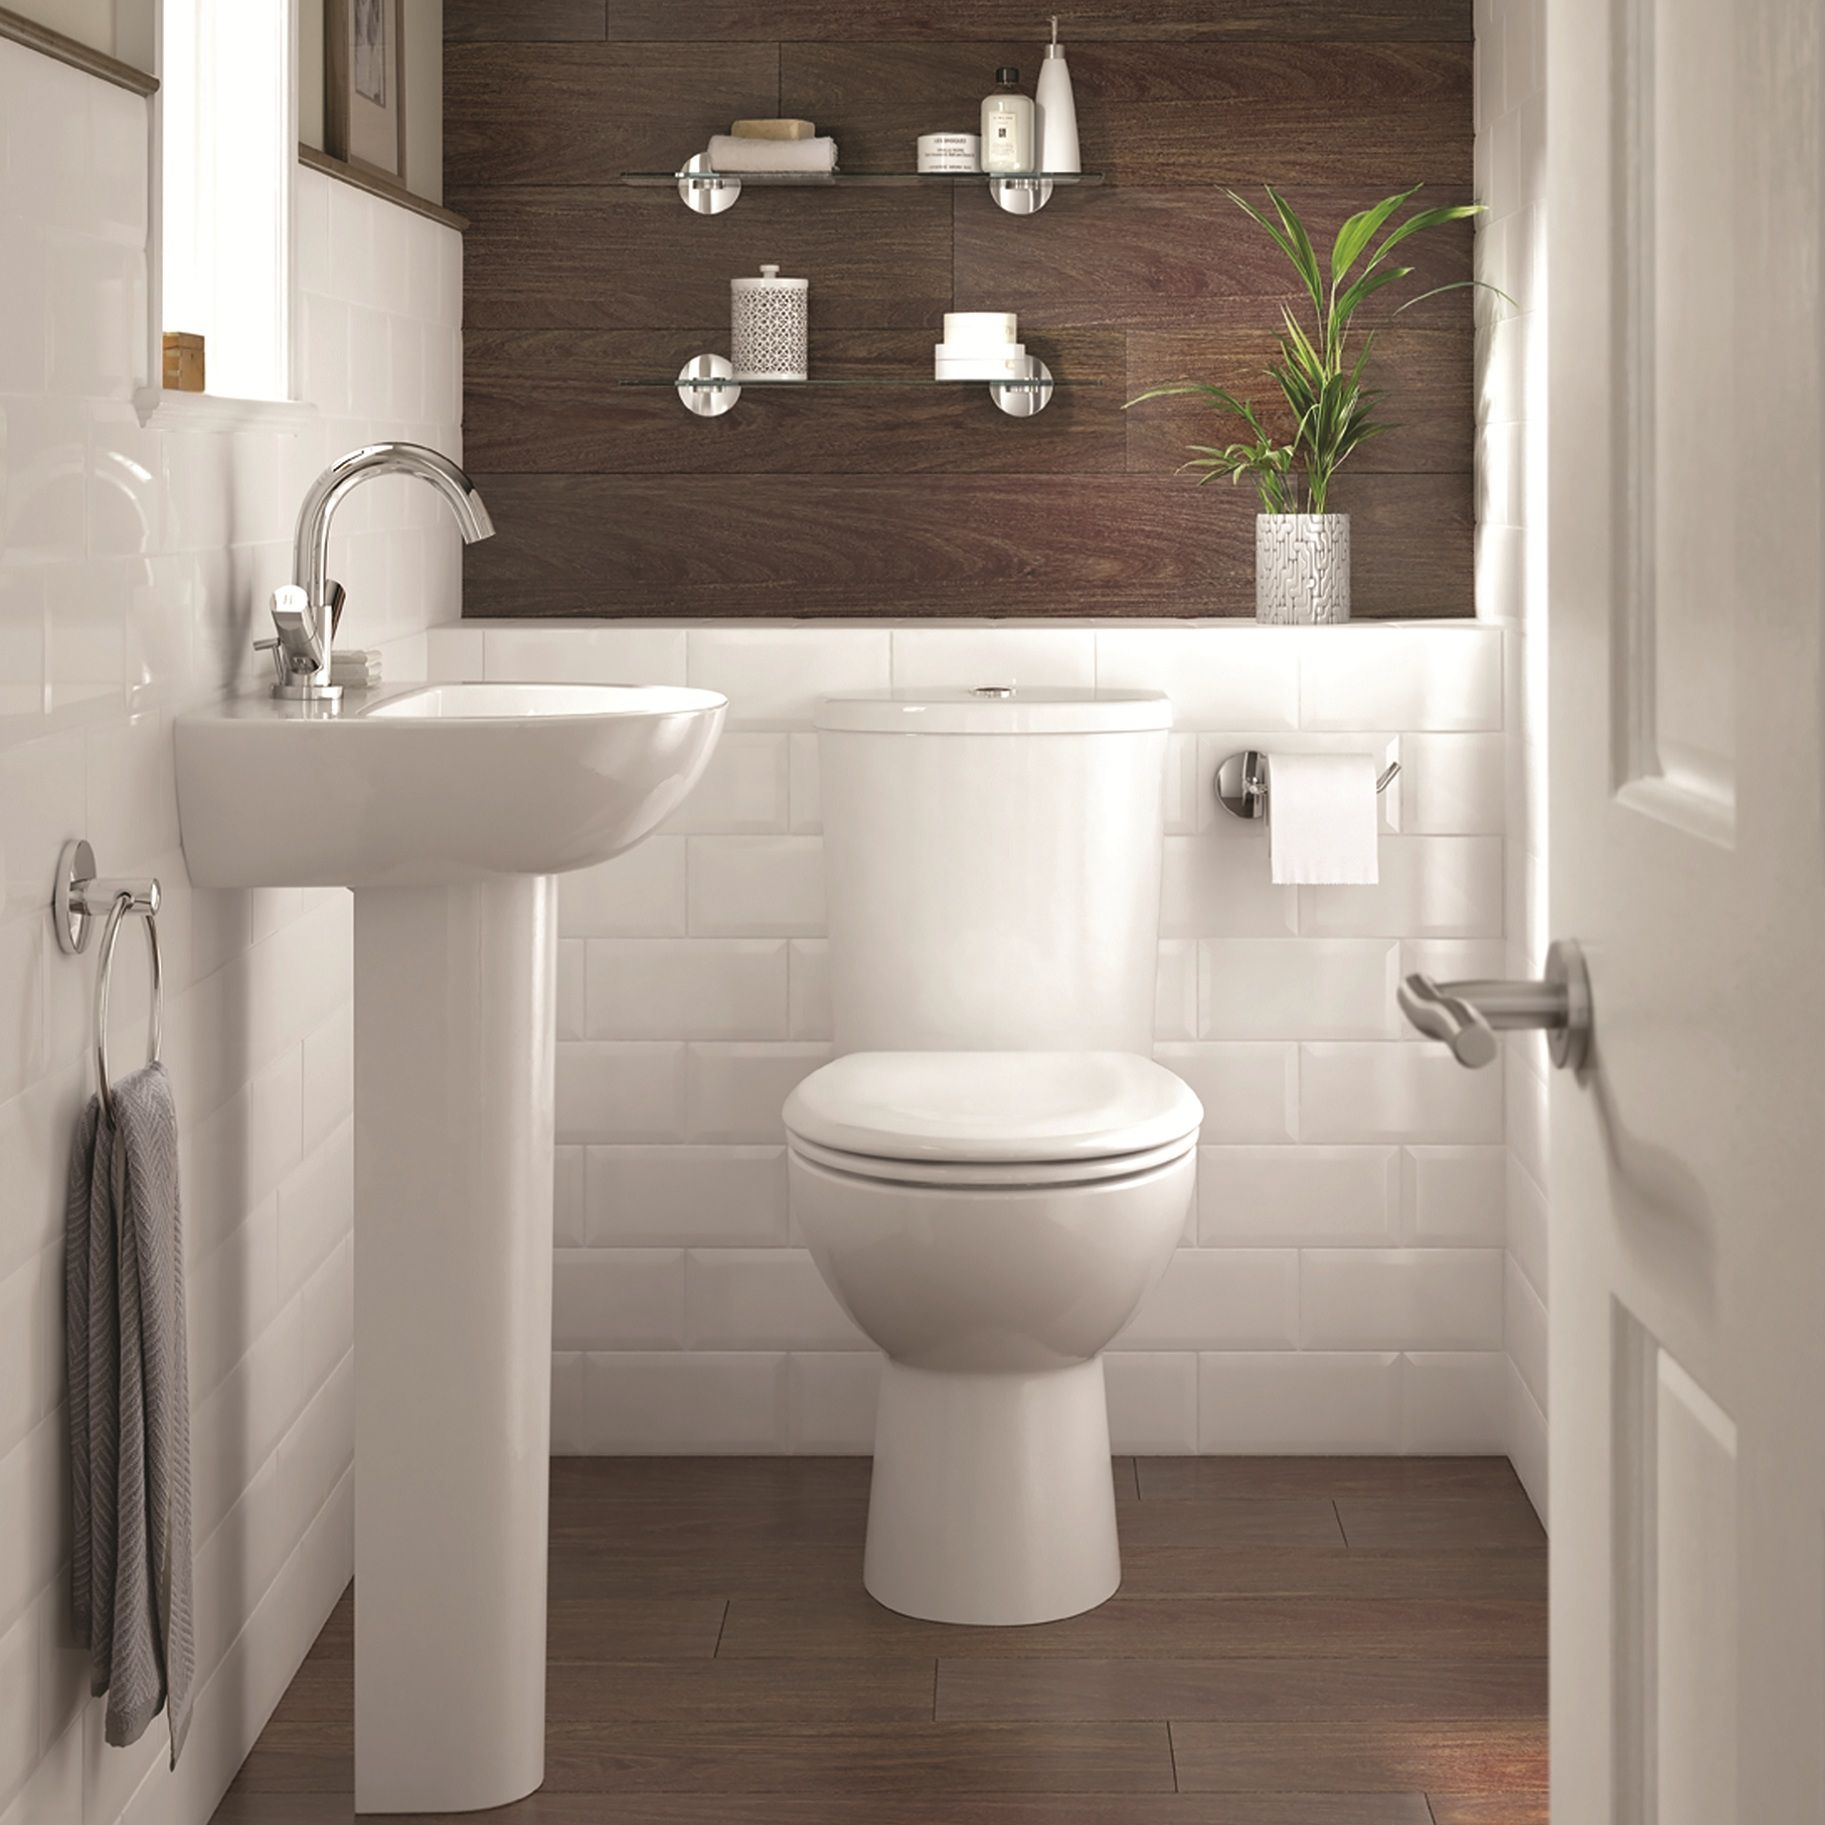 Bathrooms Suites And Kitchens City Plumbing